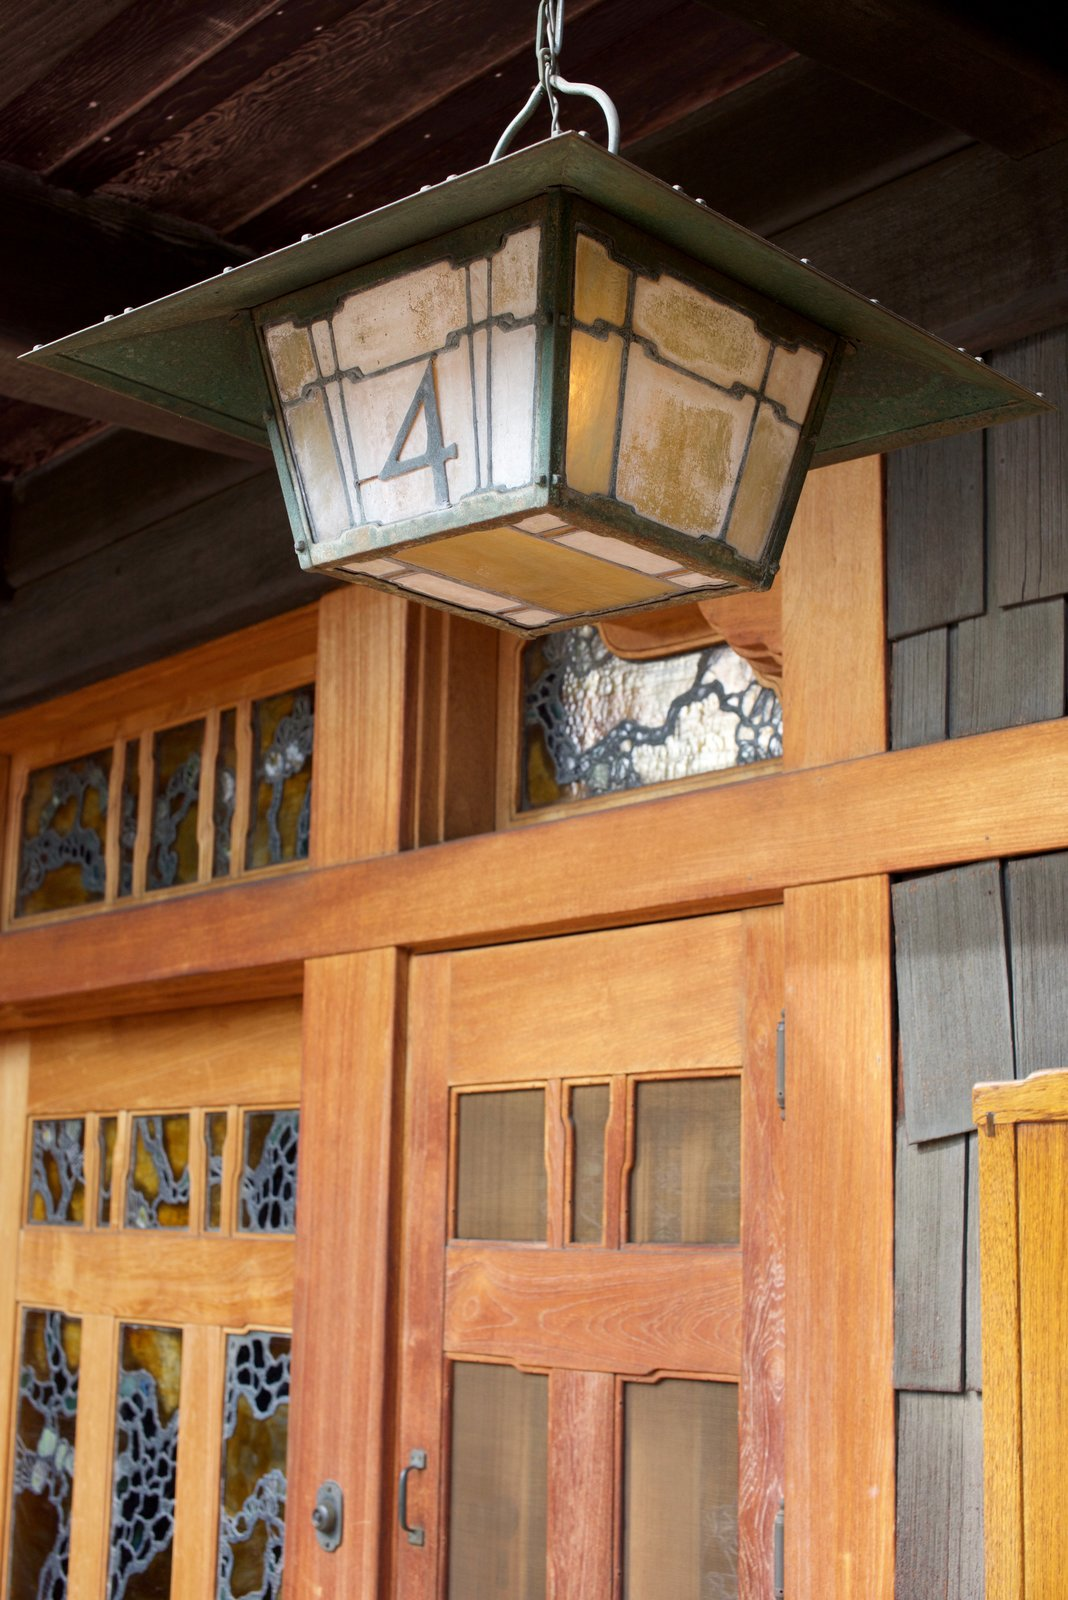 The home is surrounded by open porches that are constructed of cedar. The house's art glass—shown here on the front door—acted as a way to bring light into the space before there was electricity. Thus, it acted as a functional work of art.  Photo 6 of 8 in Iconic Perspectives: Greene & Greene's Gamble House